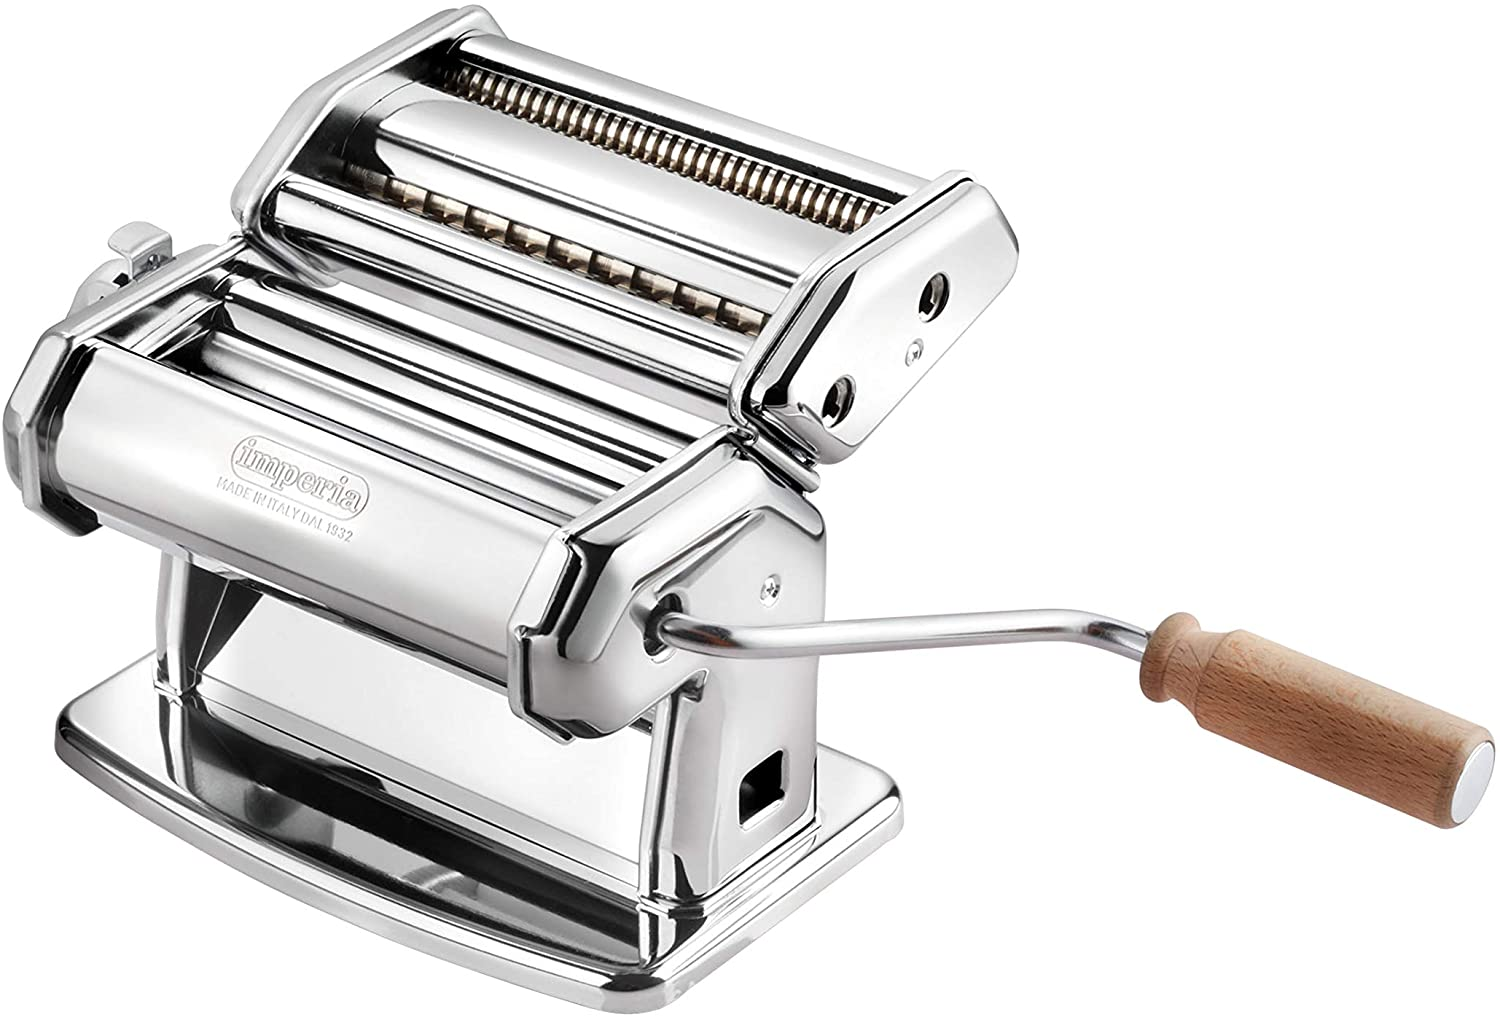 Imperia Pasta Maker Machine with wooden handle